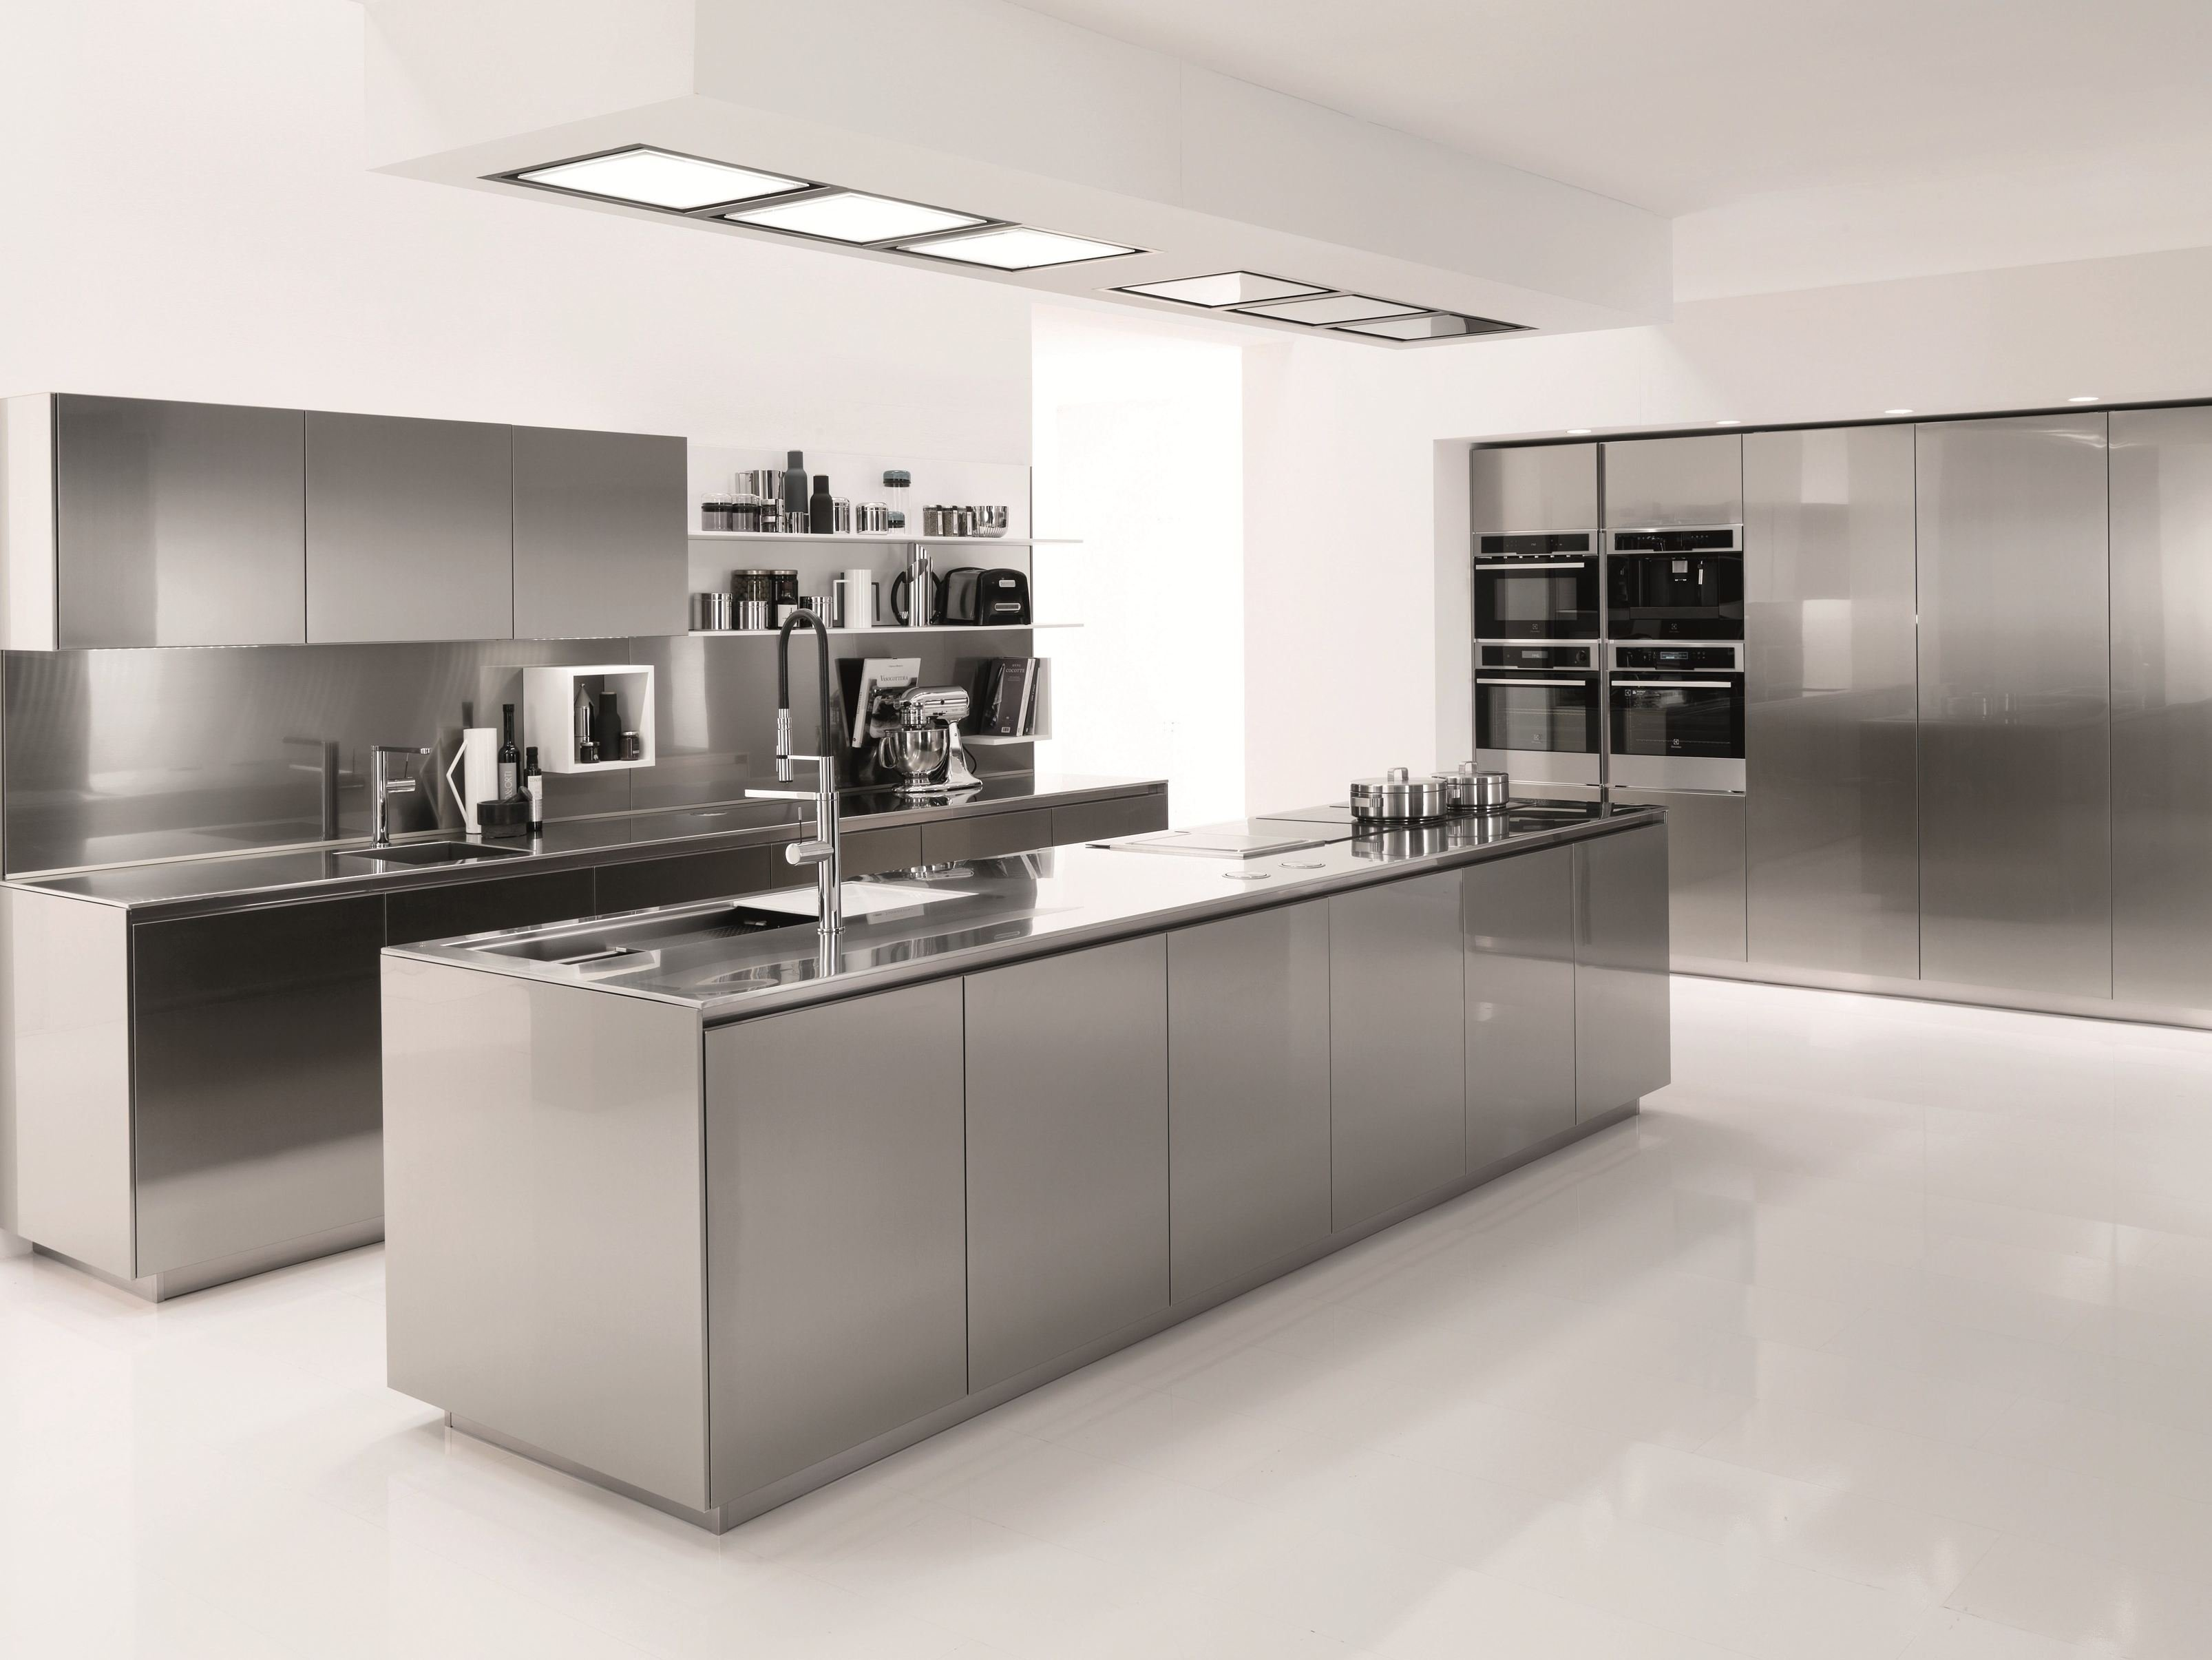 Stainless steel kitchen filofree steel by euromobil design for Kitchen set expo